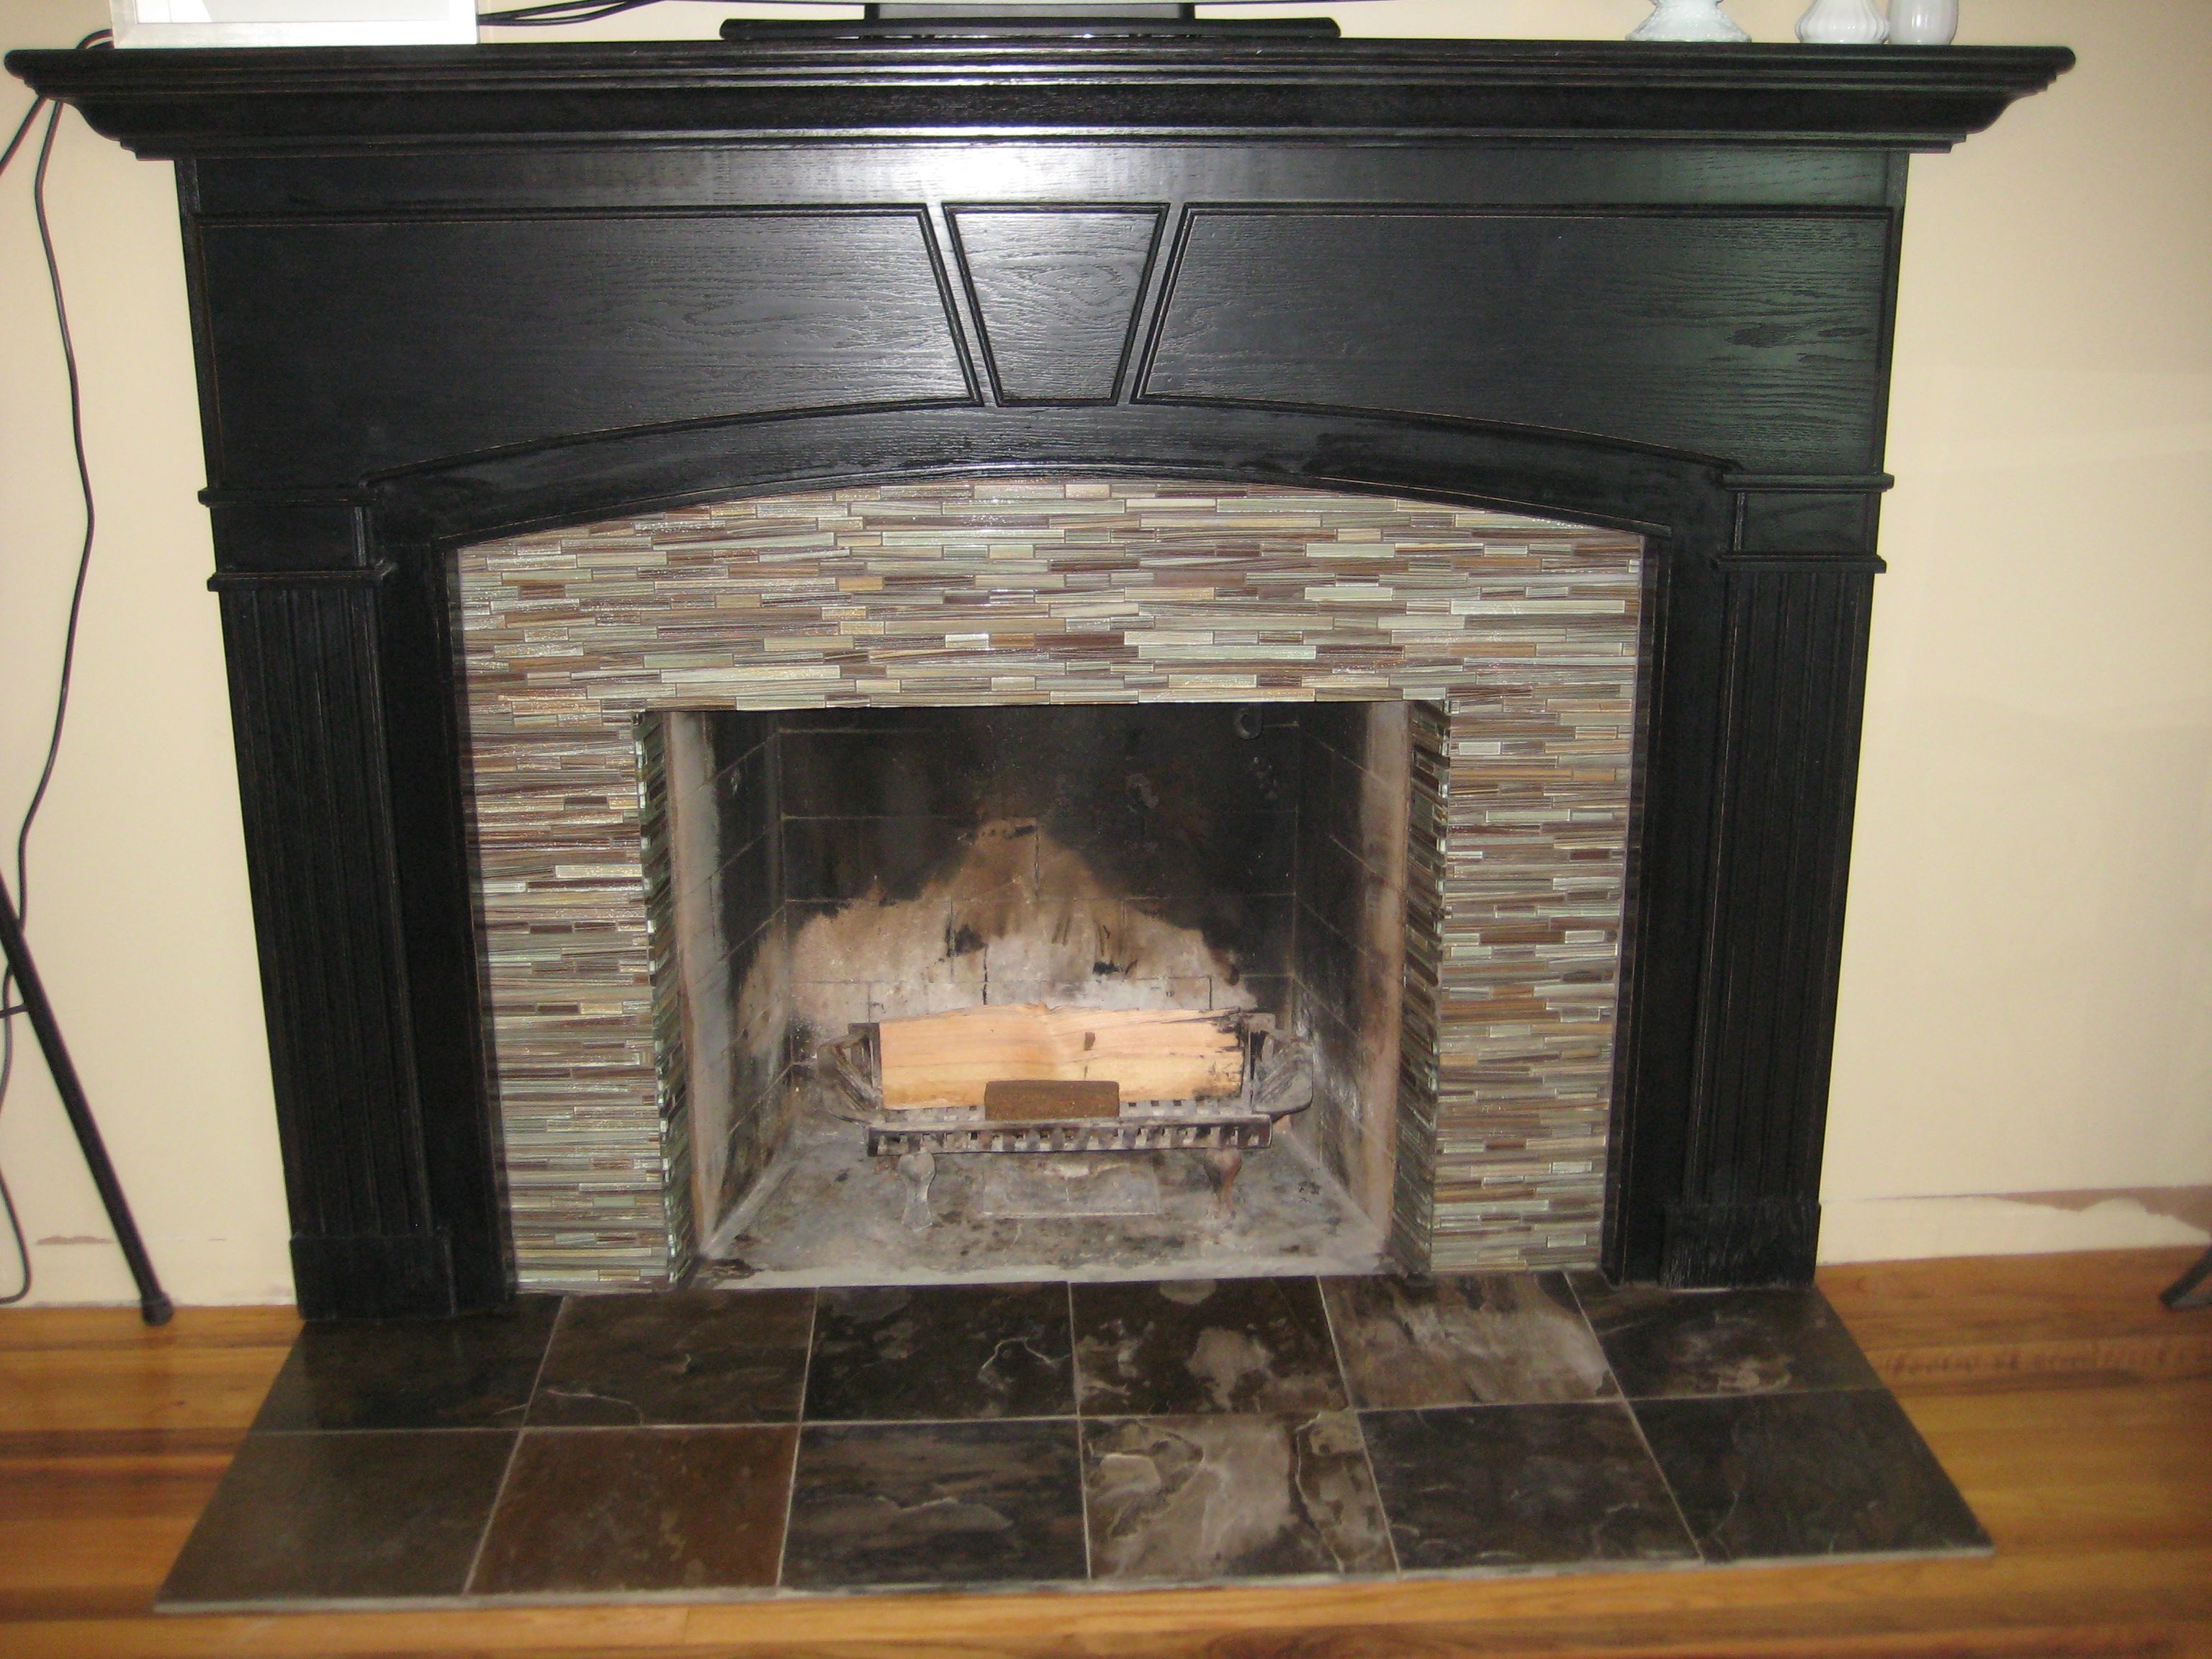 accessories furniturestunning glass mosaic fireplace surround with black wooden fireplace mantle and ceramic